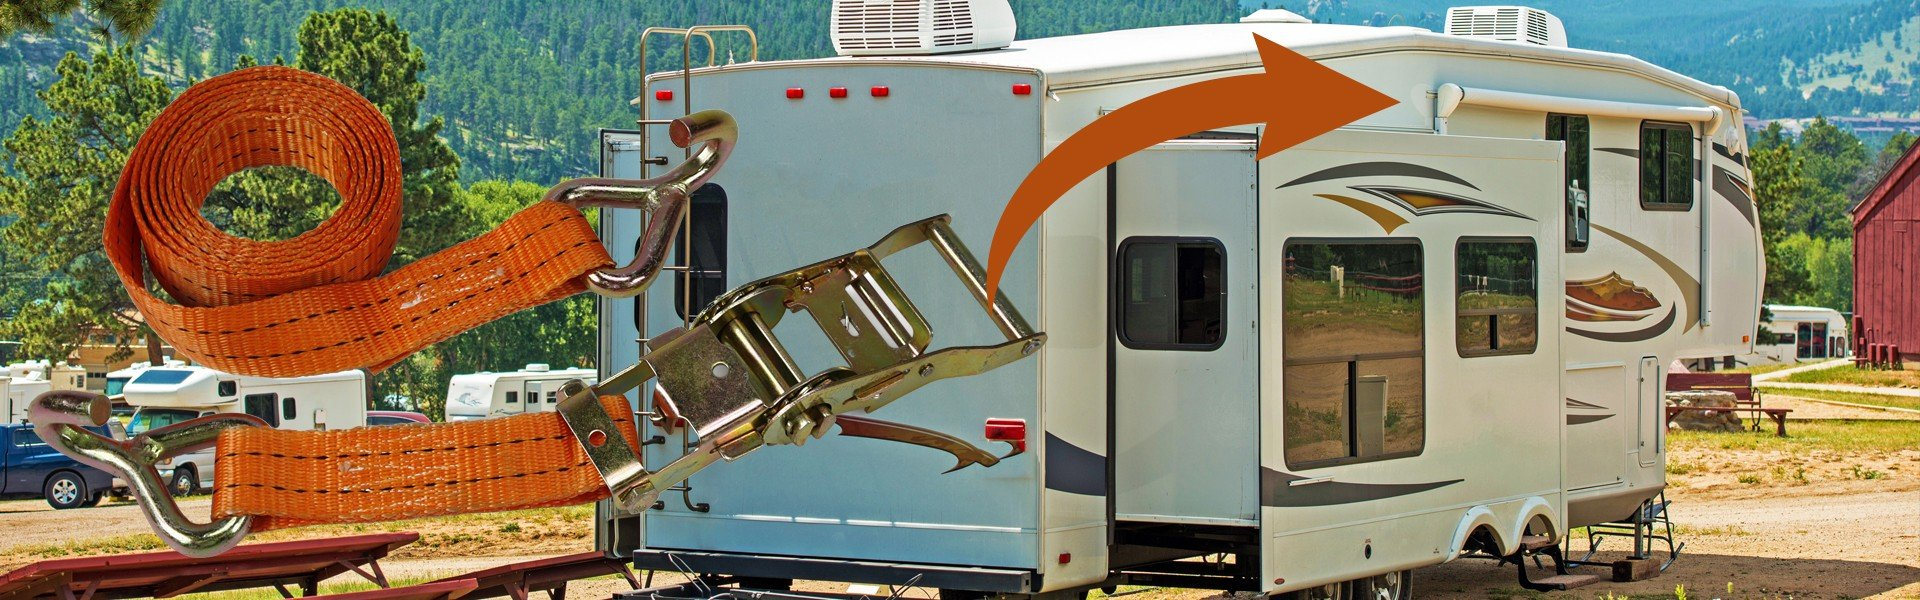 Ratchet straps over picture of RV with arrow pointing towards awning